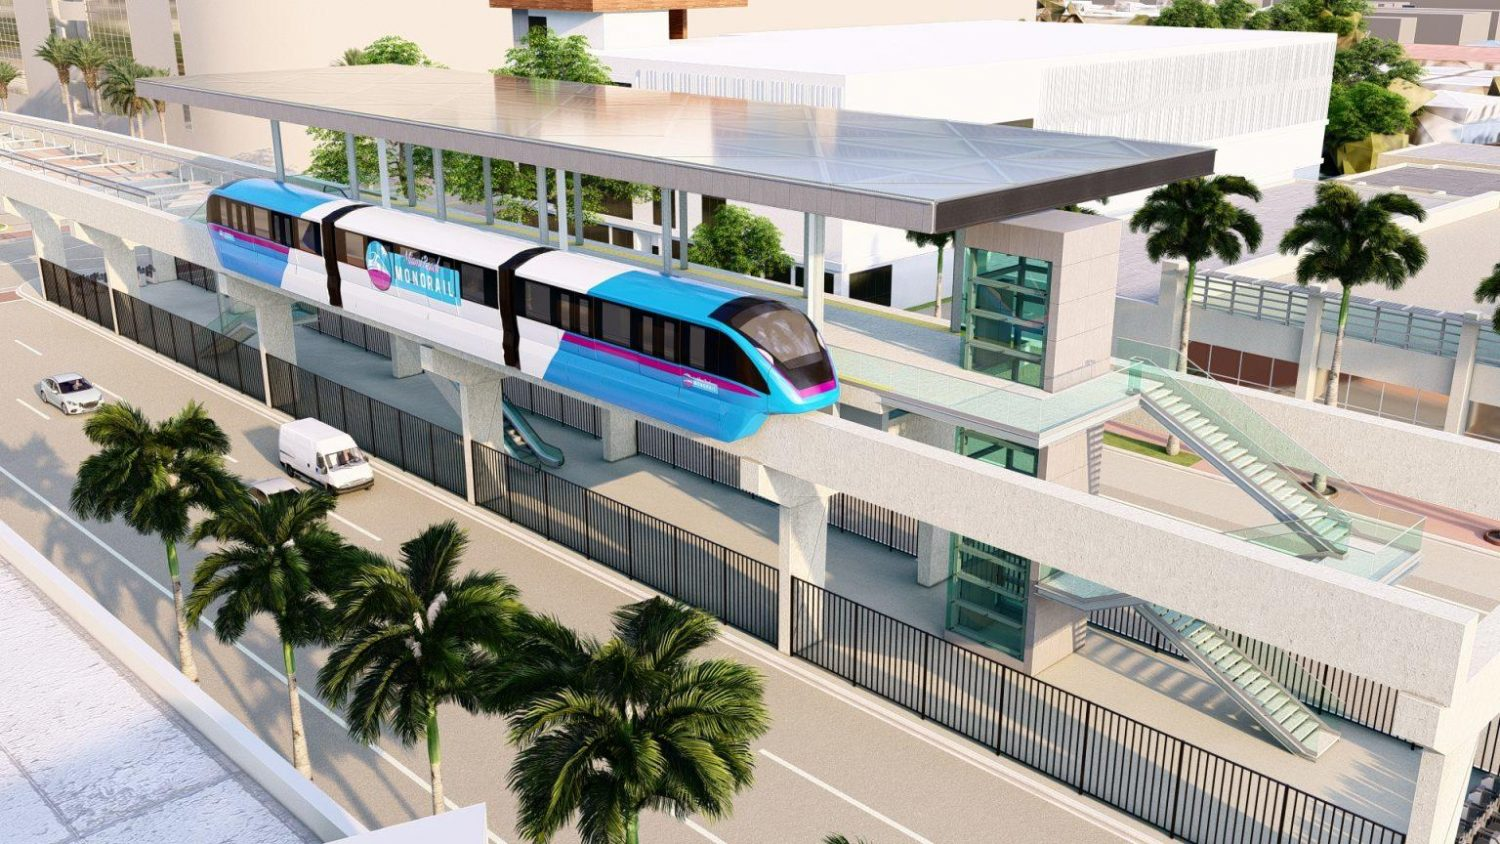 Rendering of the monorail station.